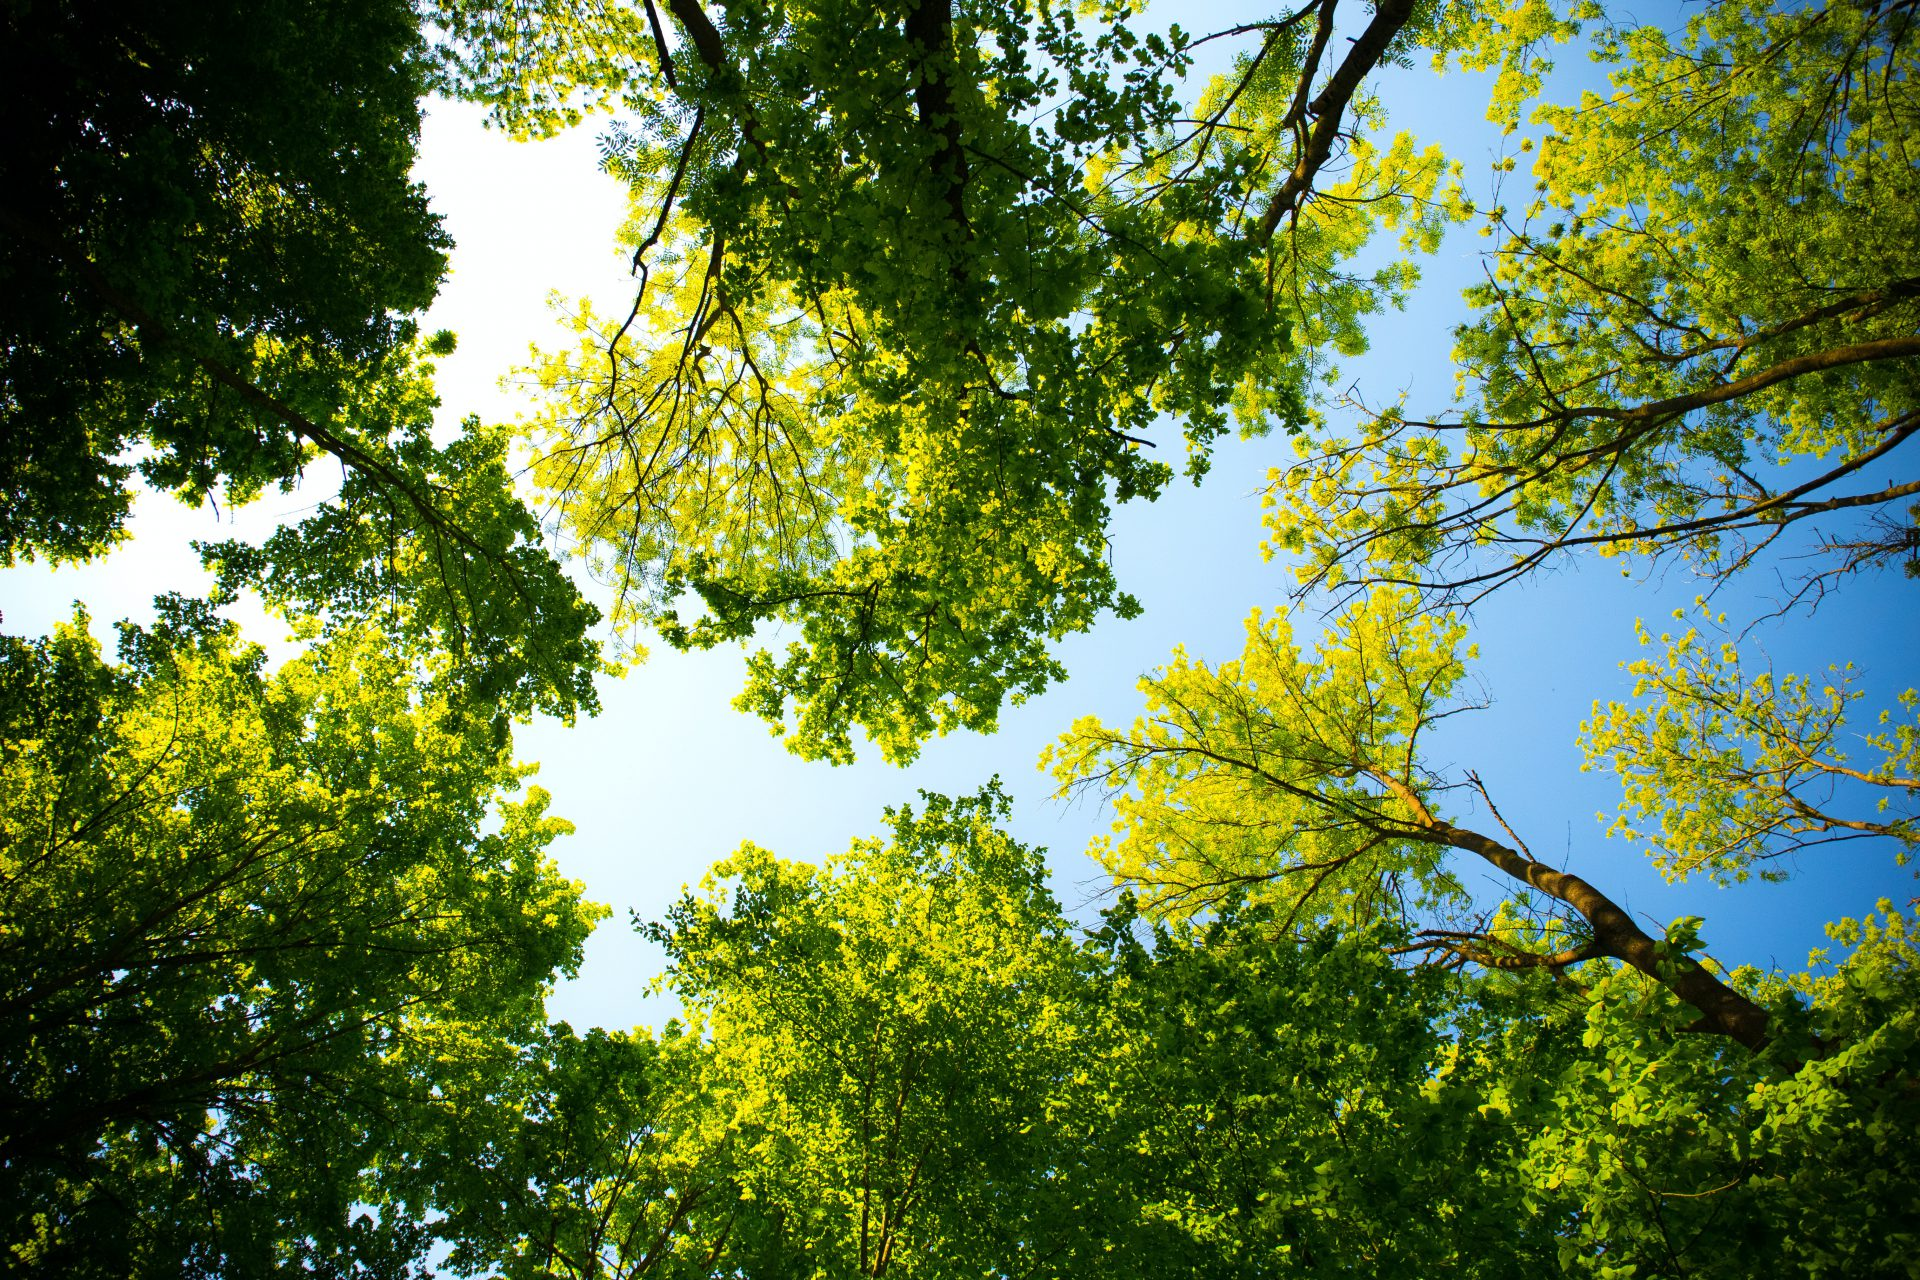 Summers and company view of trees and sky